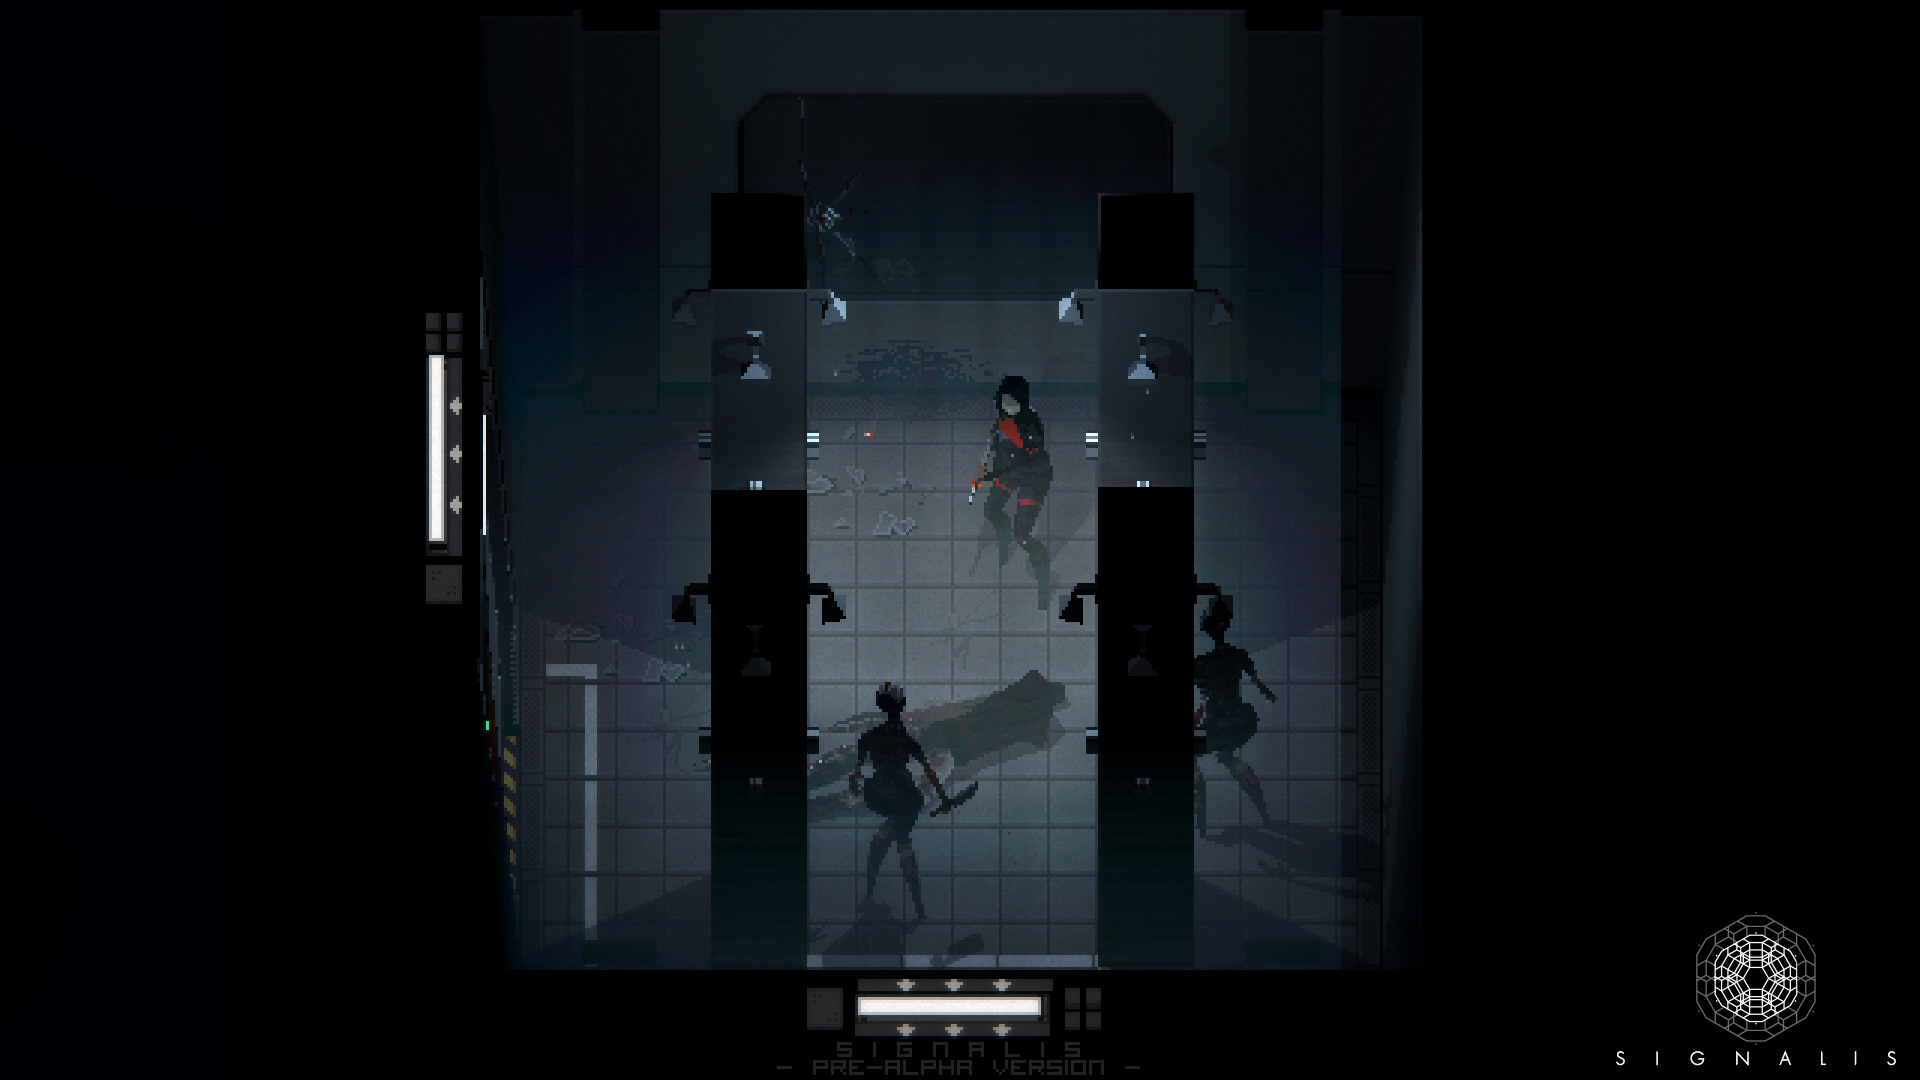 Signalis is a sci-fi survival horror game worth following